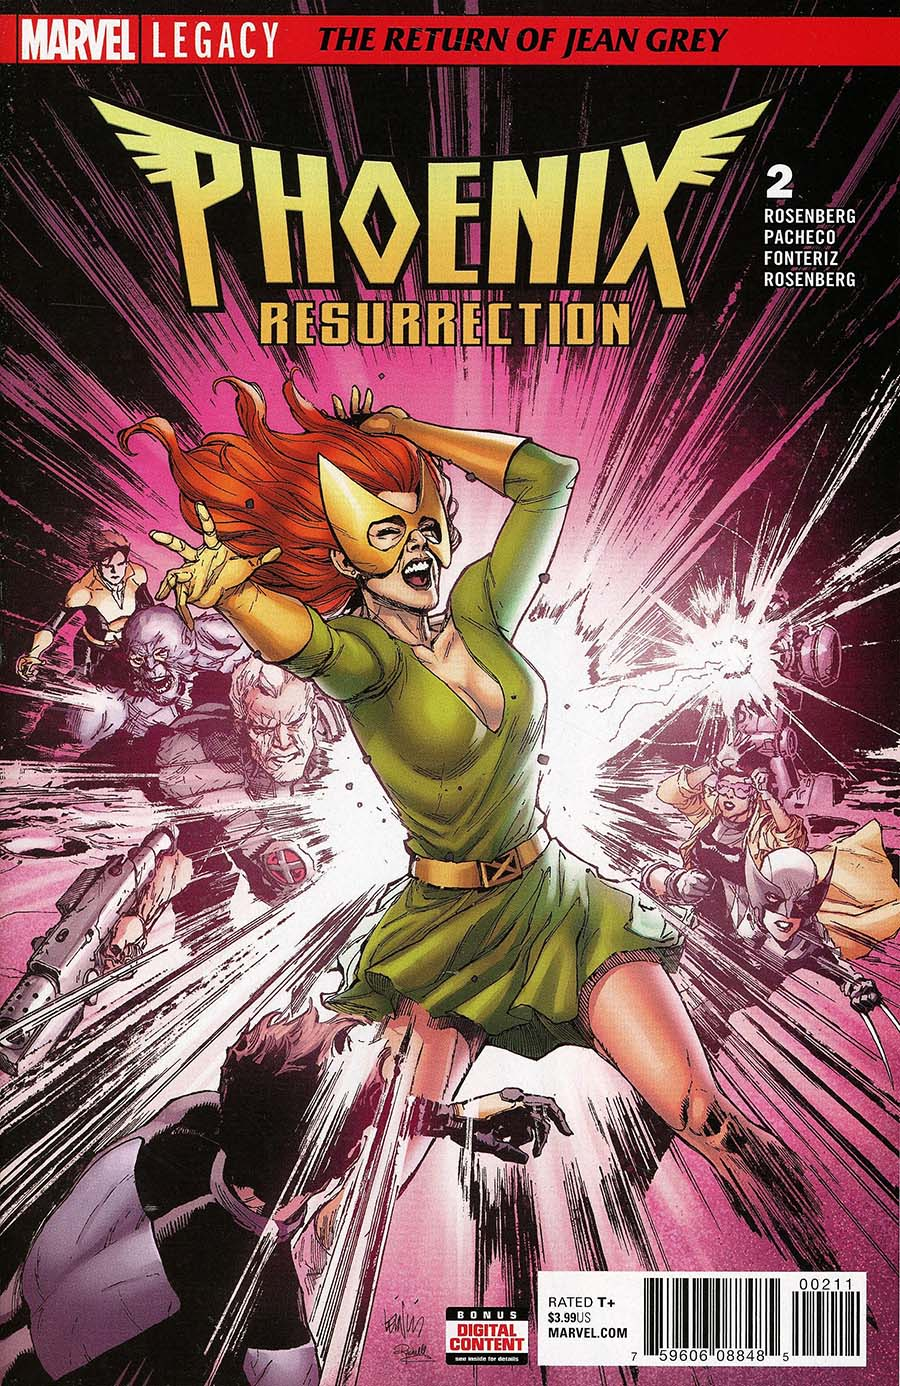 Phoenix Resurrection Return Of (Adult) Jean Grey #2 Cover A Regular Leinil Francis Yu Cover (Marvel Legacy Tie-In)